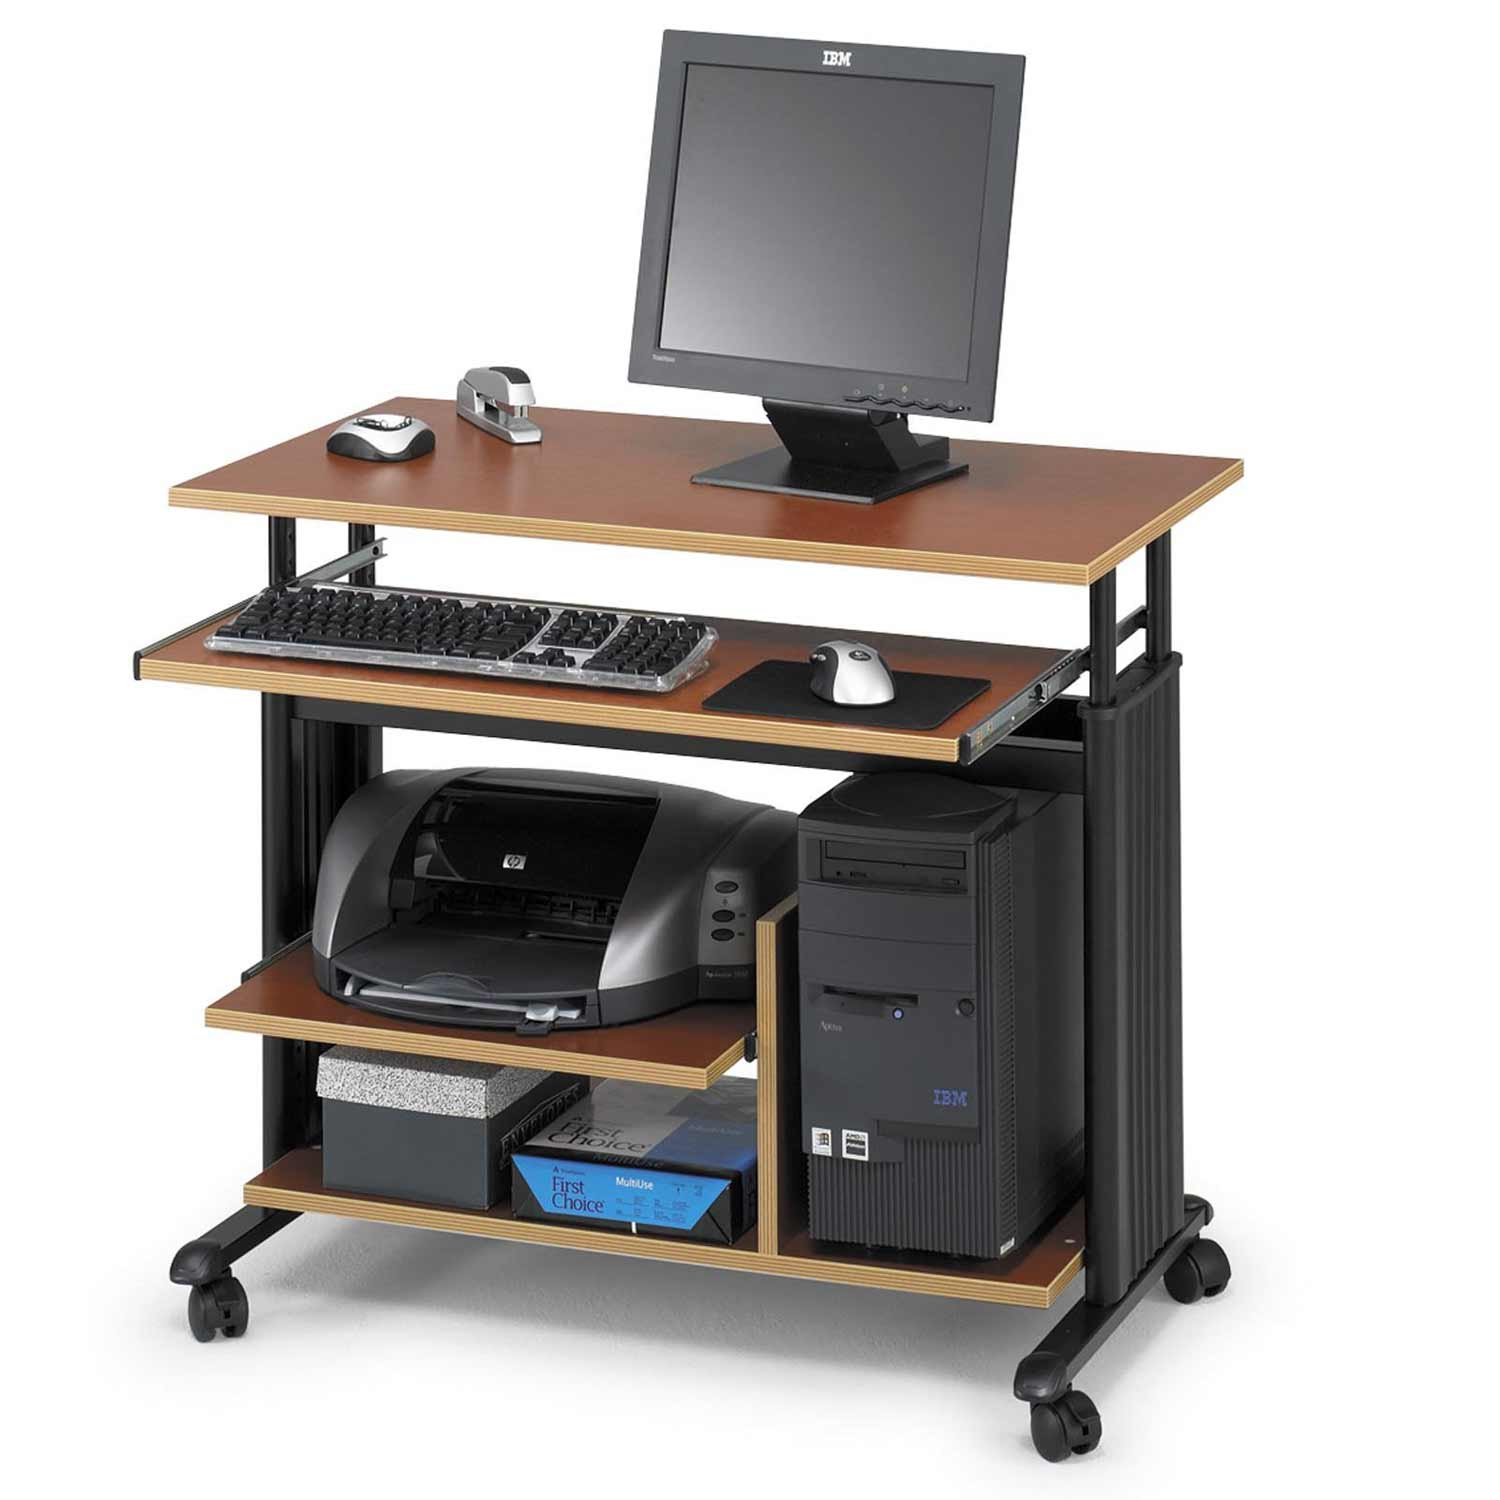 Safco movable height adjustable workstation for mini tower